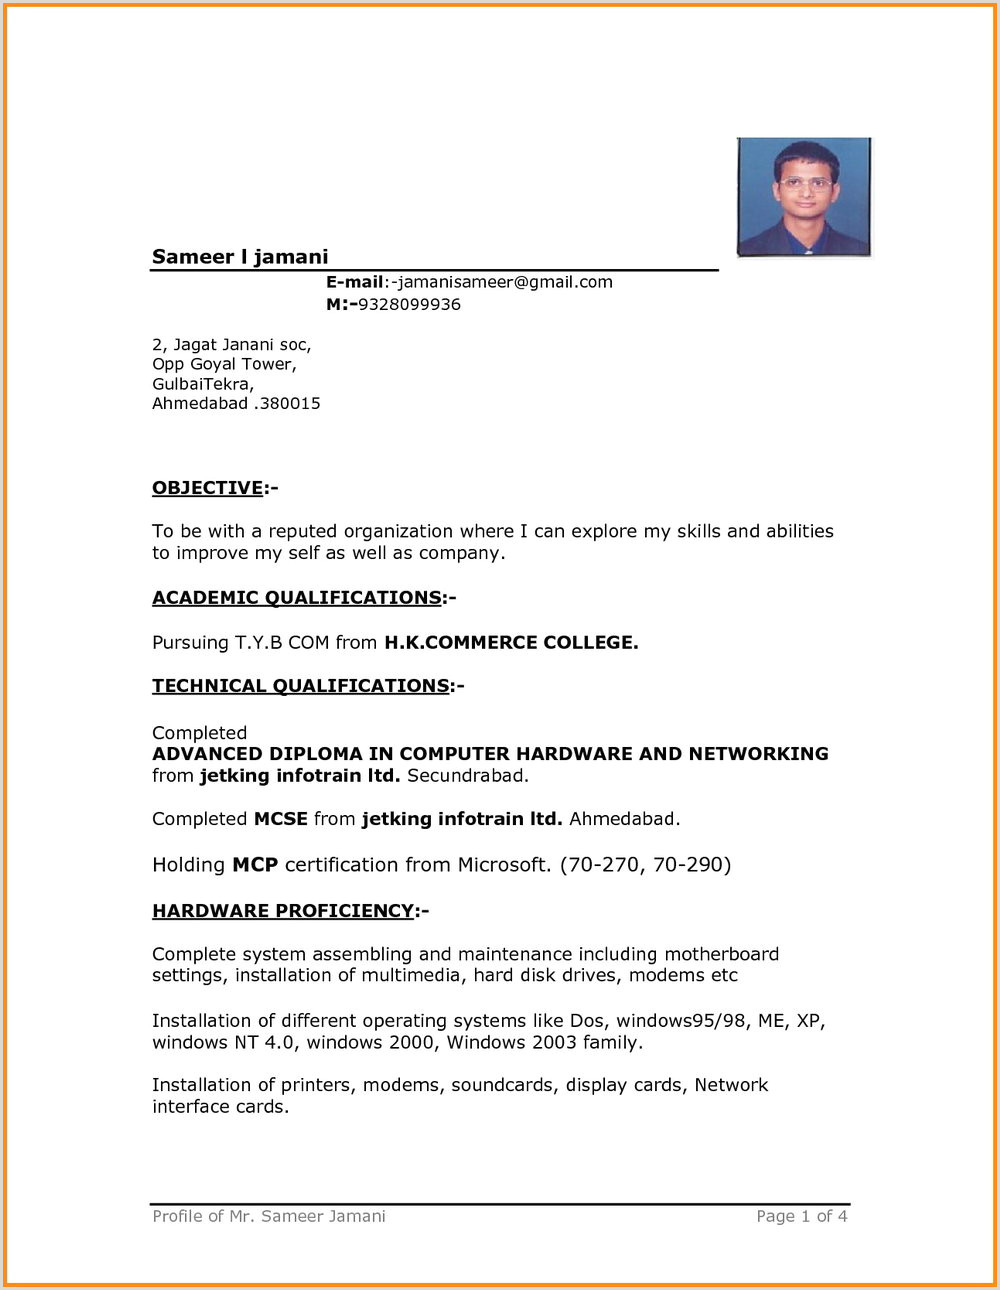 Bca Fresher Resume Format Download In Ms Word 10 Simple Resume Formats For Freshers